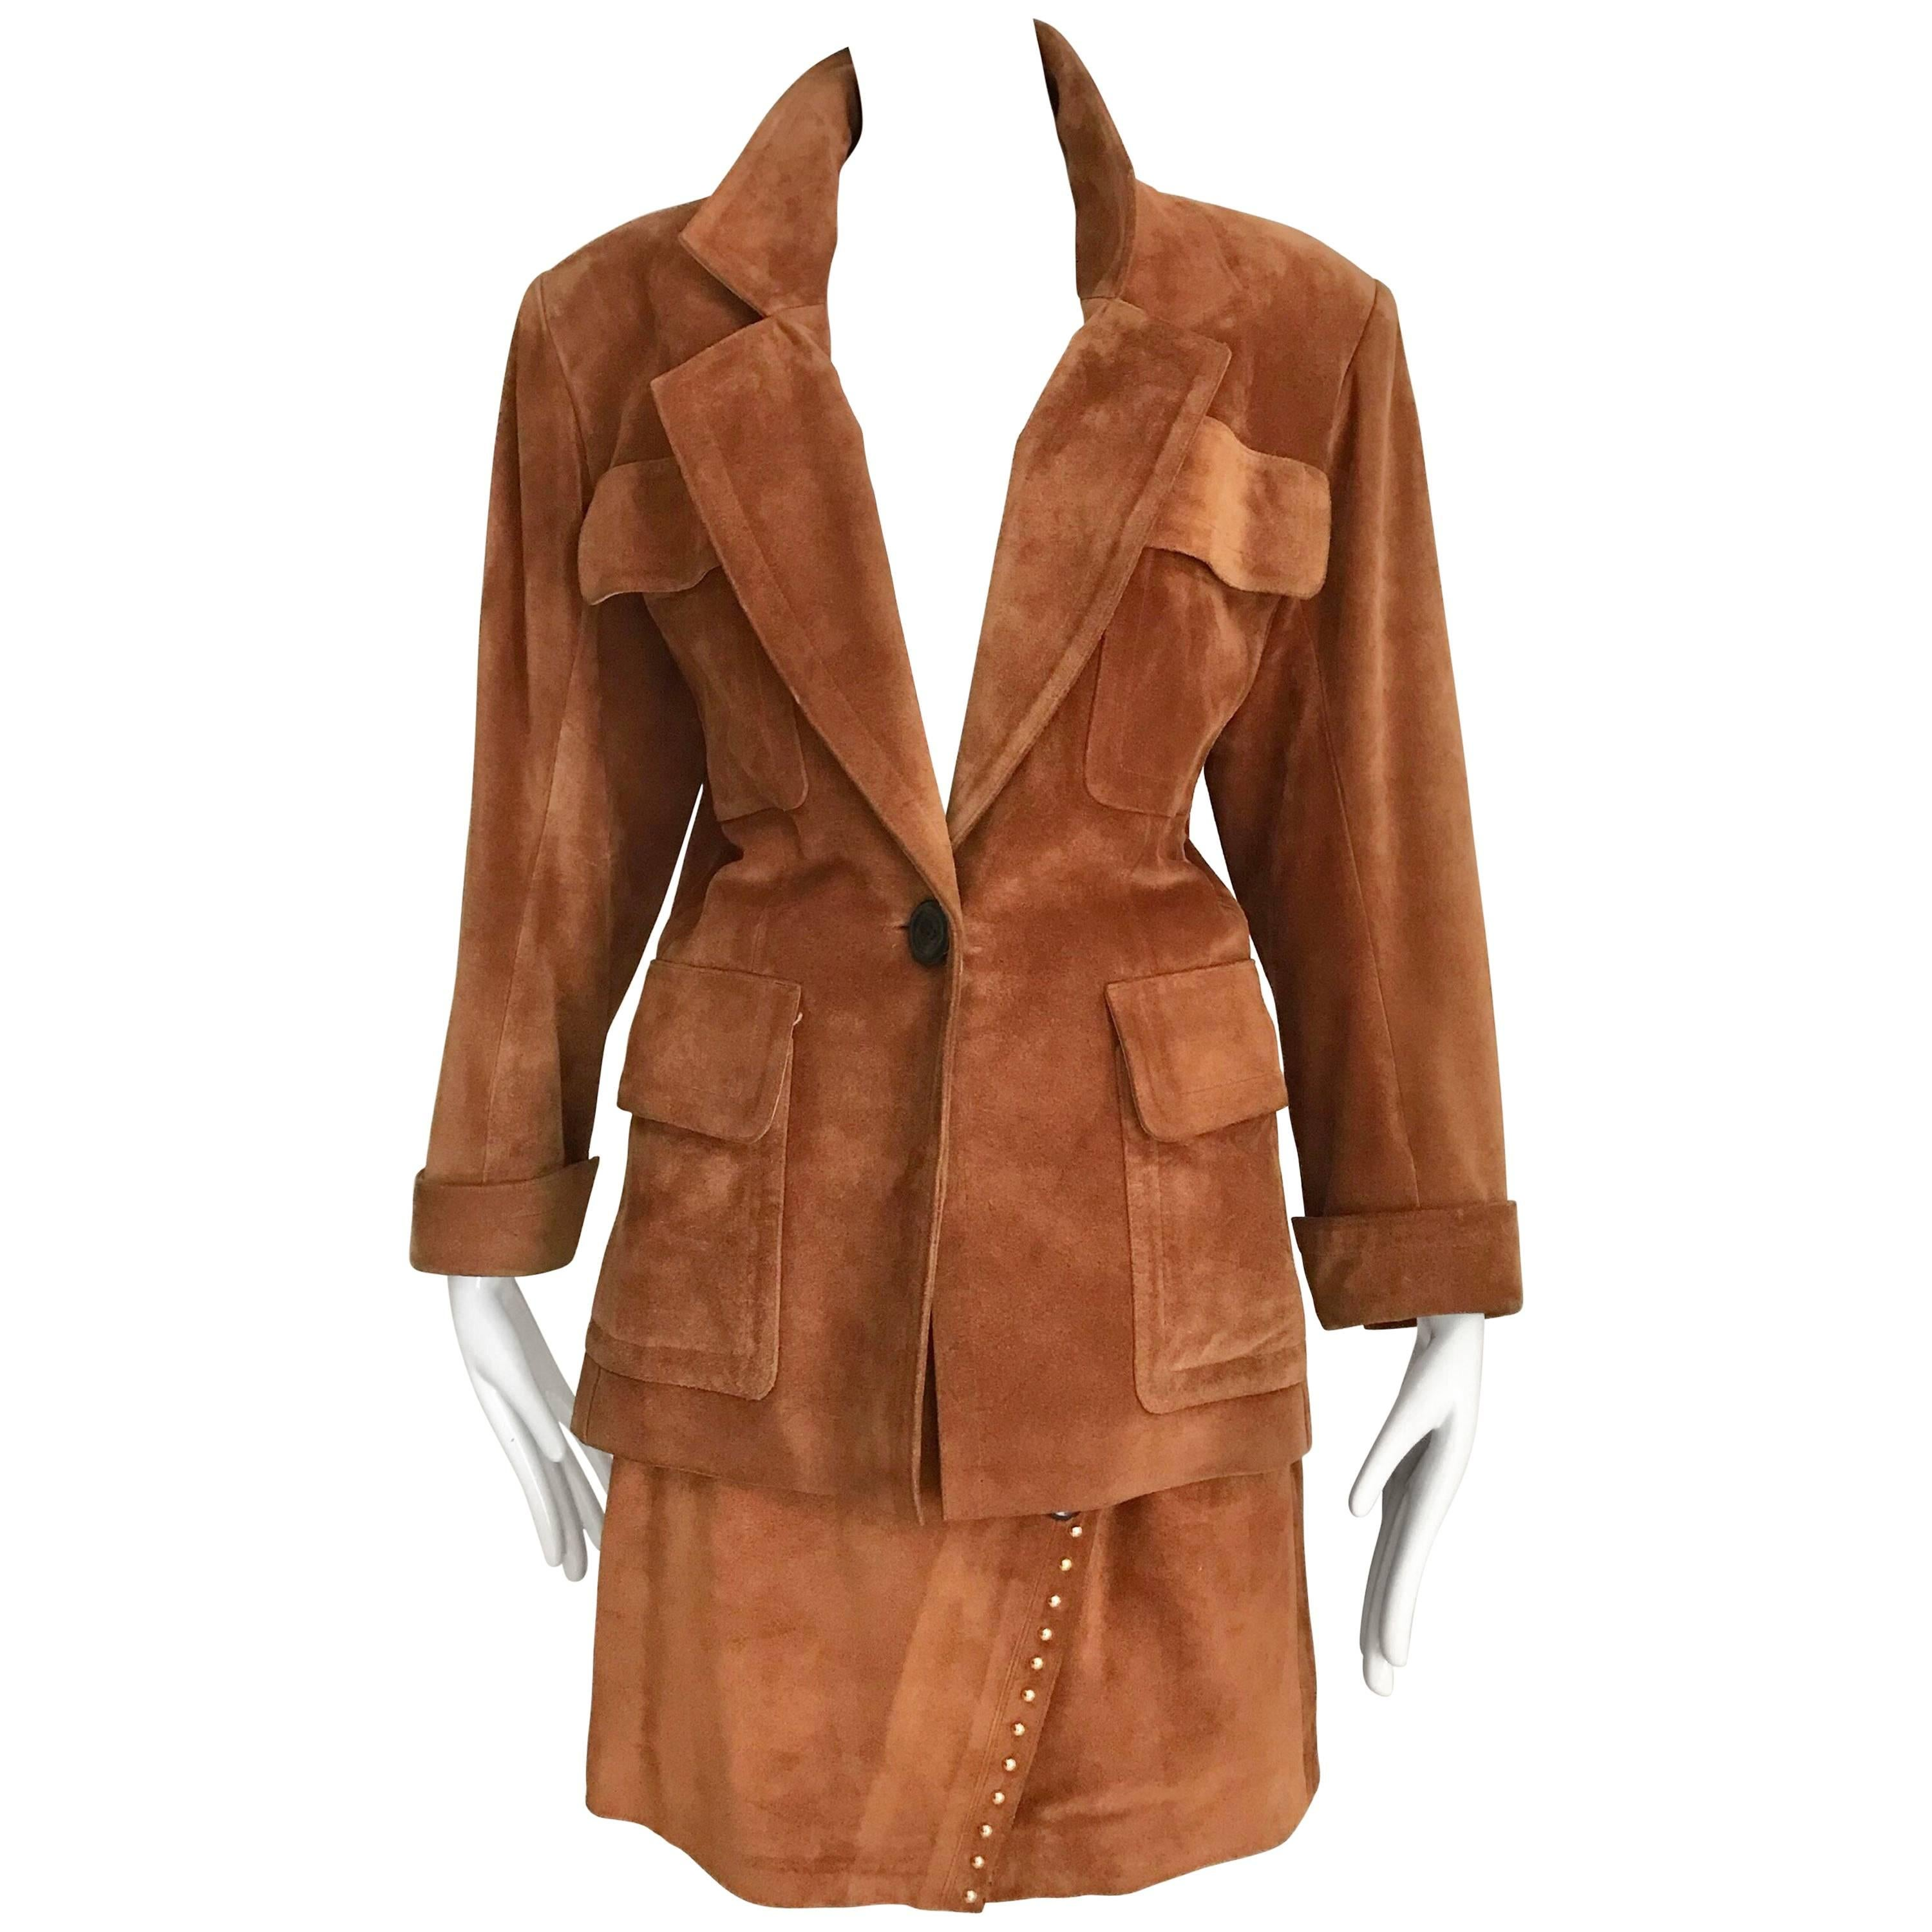 218e5f5b022 Yves Saint Laurent Numbered Haute Couture Le Smoking Suit For Sale at  1stdibs